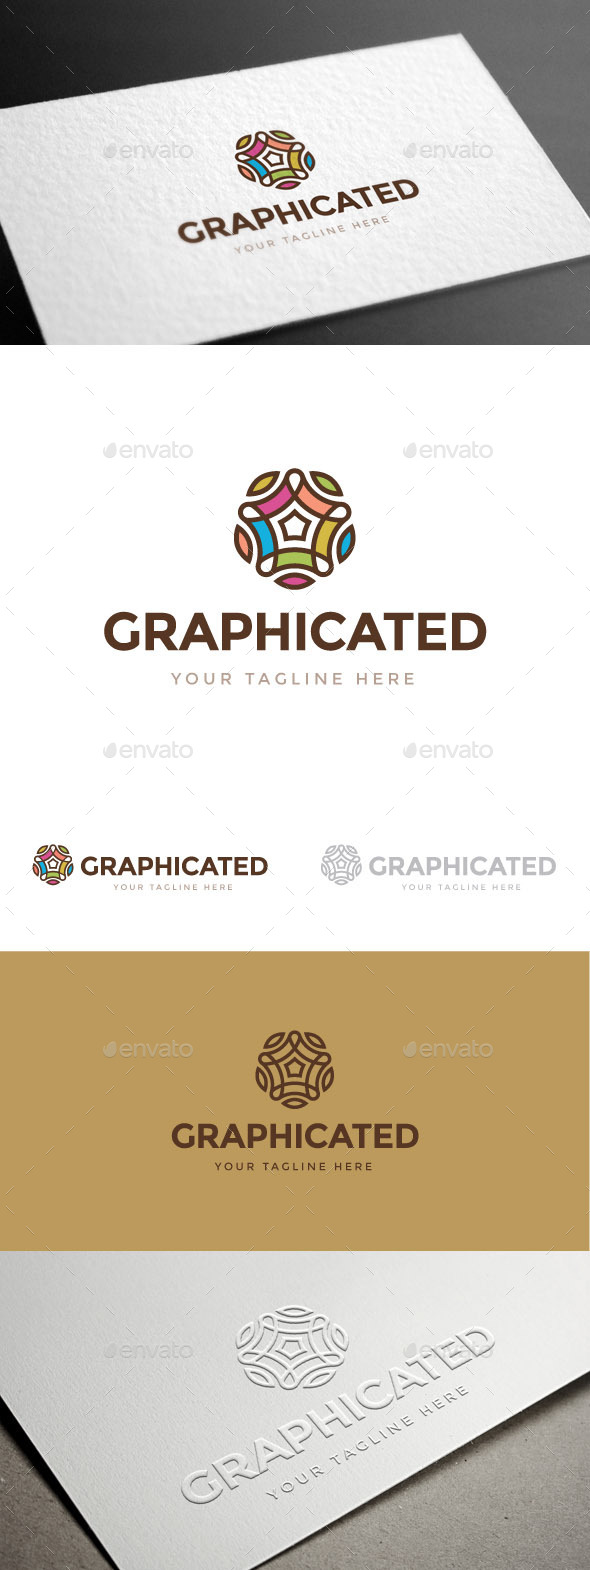 GraphicRiver Graphicated Logo Template 9157589